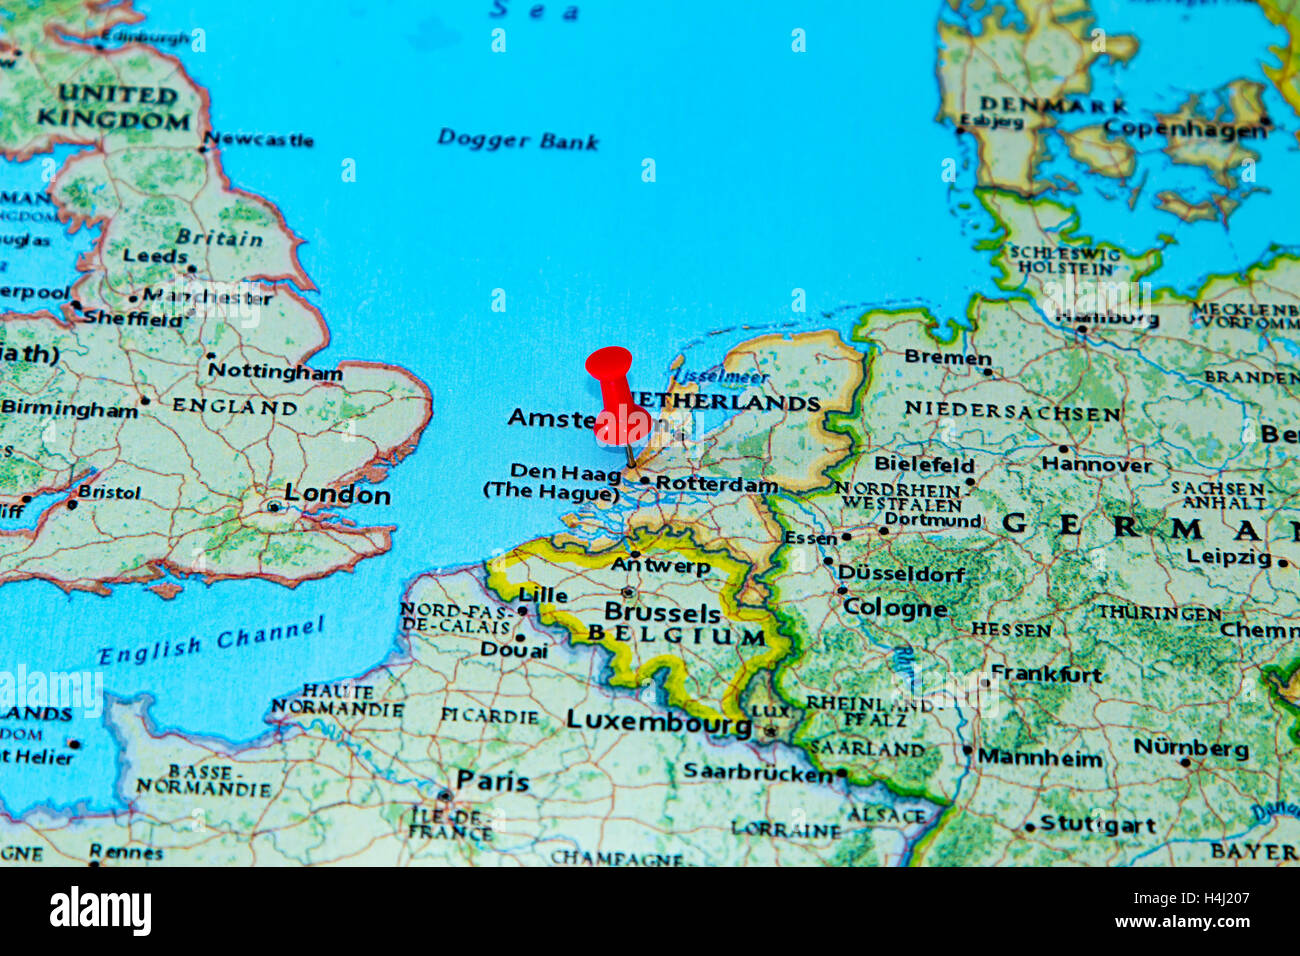 The Hague Netherlands Pinned On A Map Of Europe Stock Photo